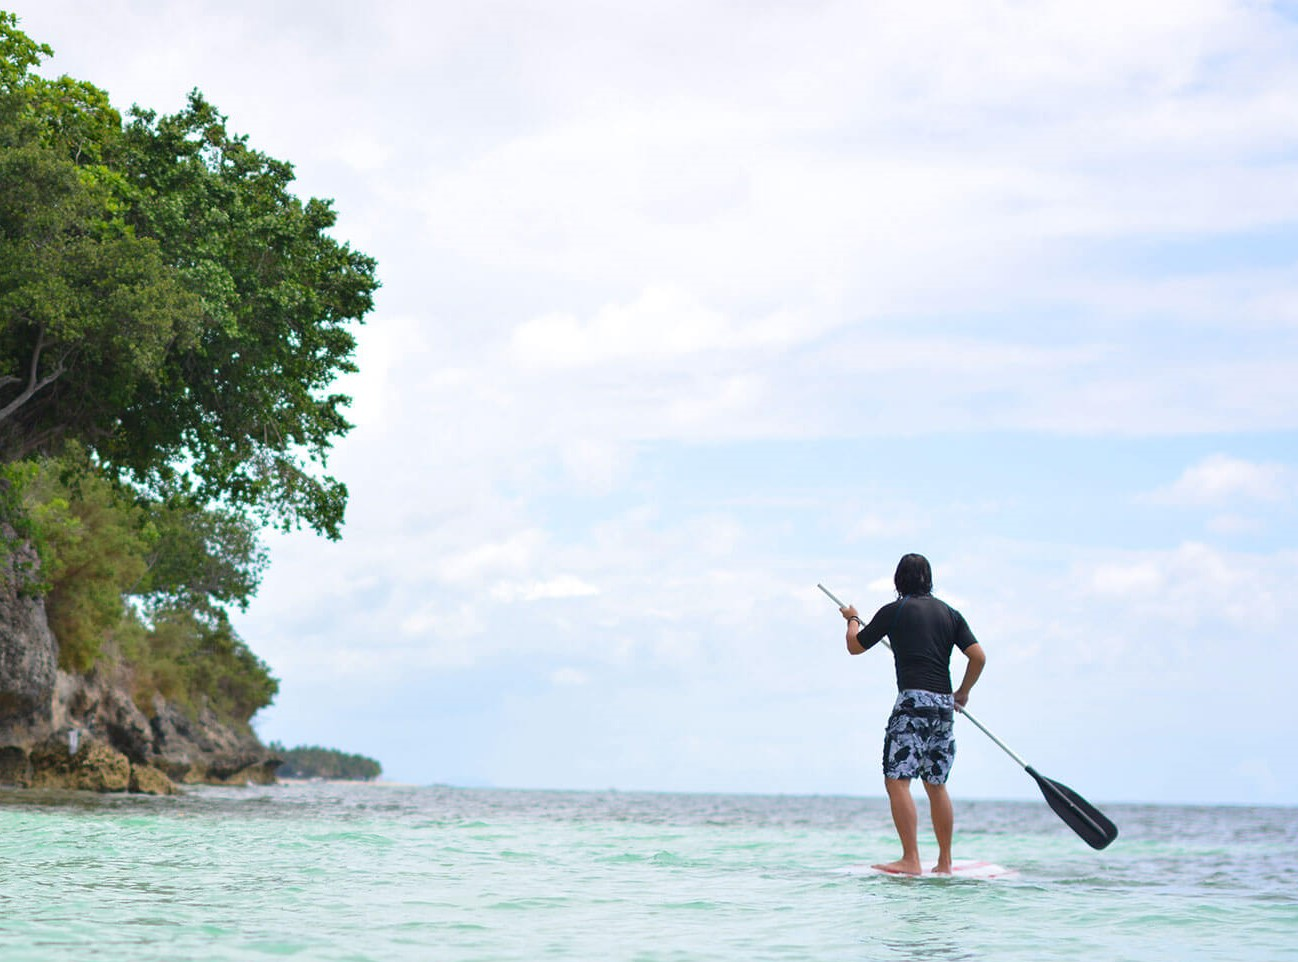 Man enjoying the stand up paddle on a sunny day at Amorita